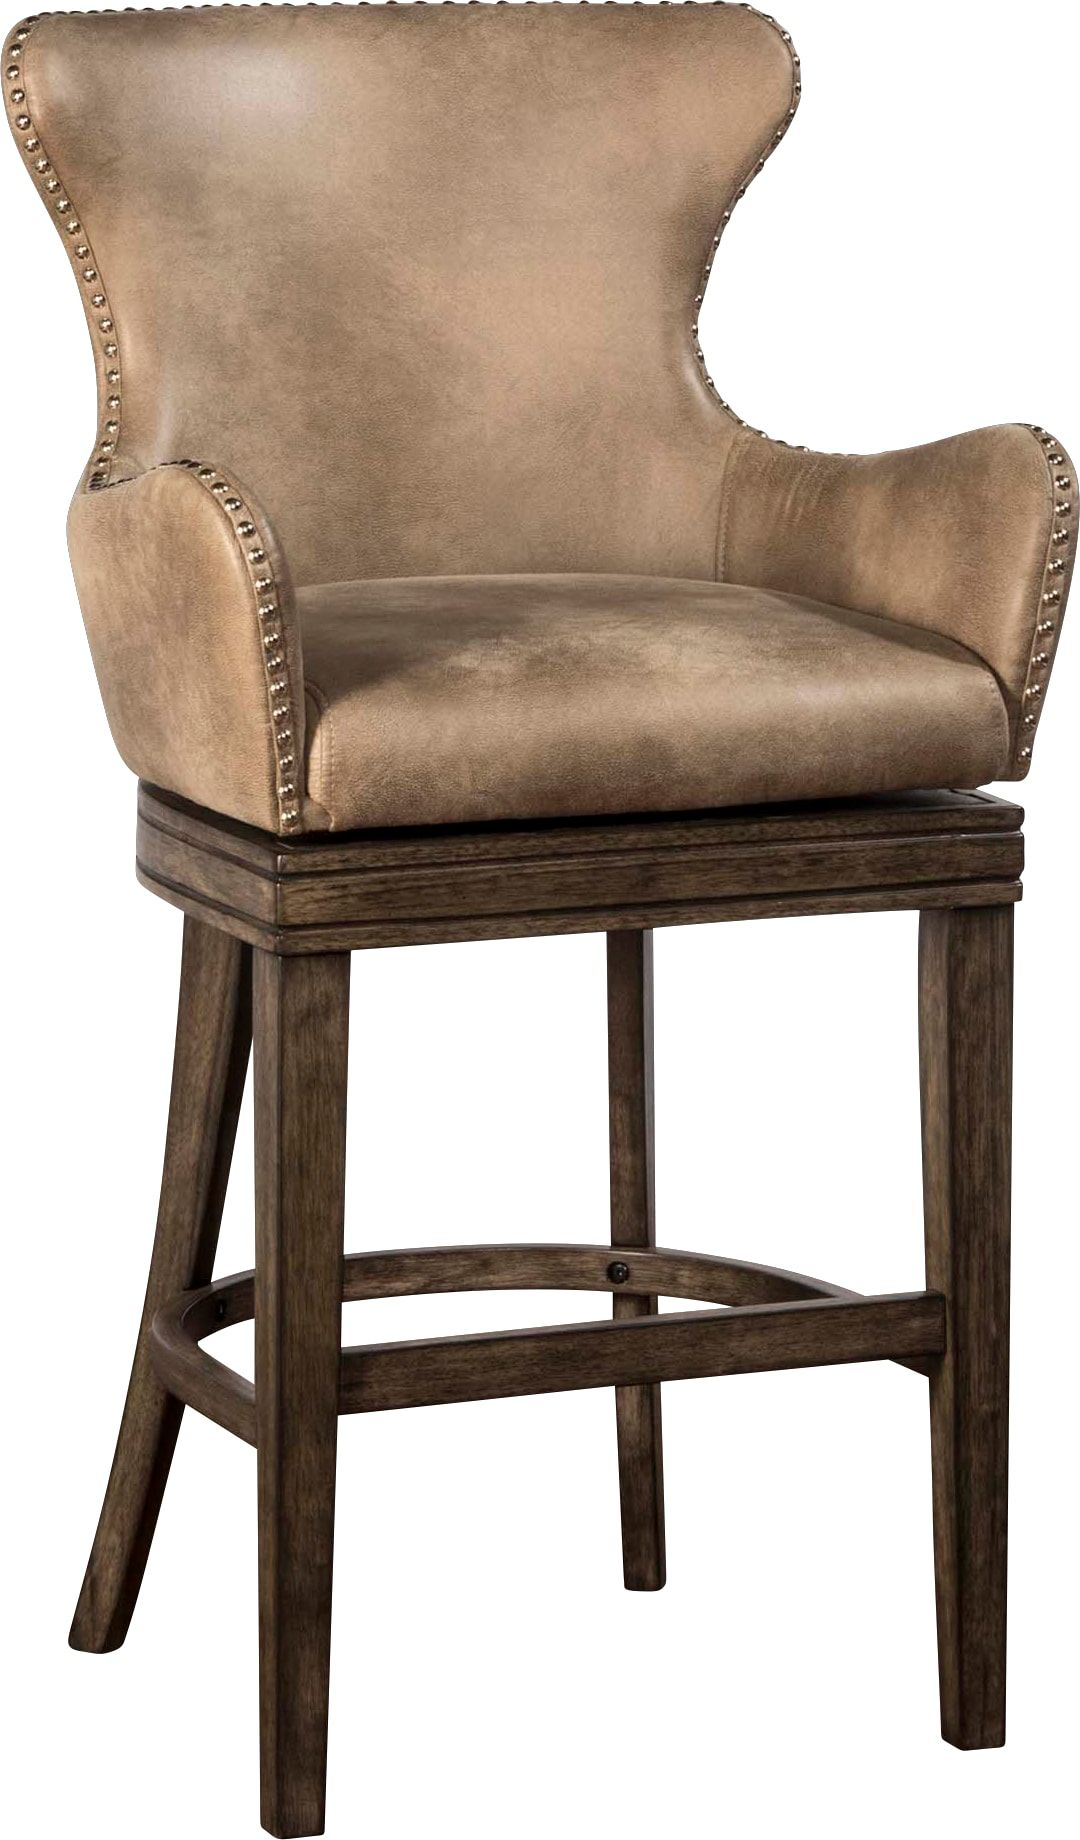 Donella beige swivel counter height stool bar stools